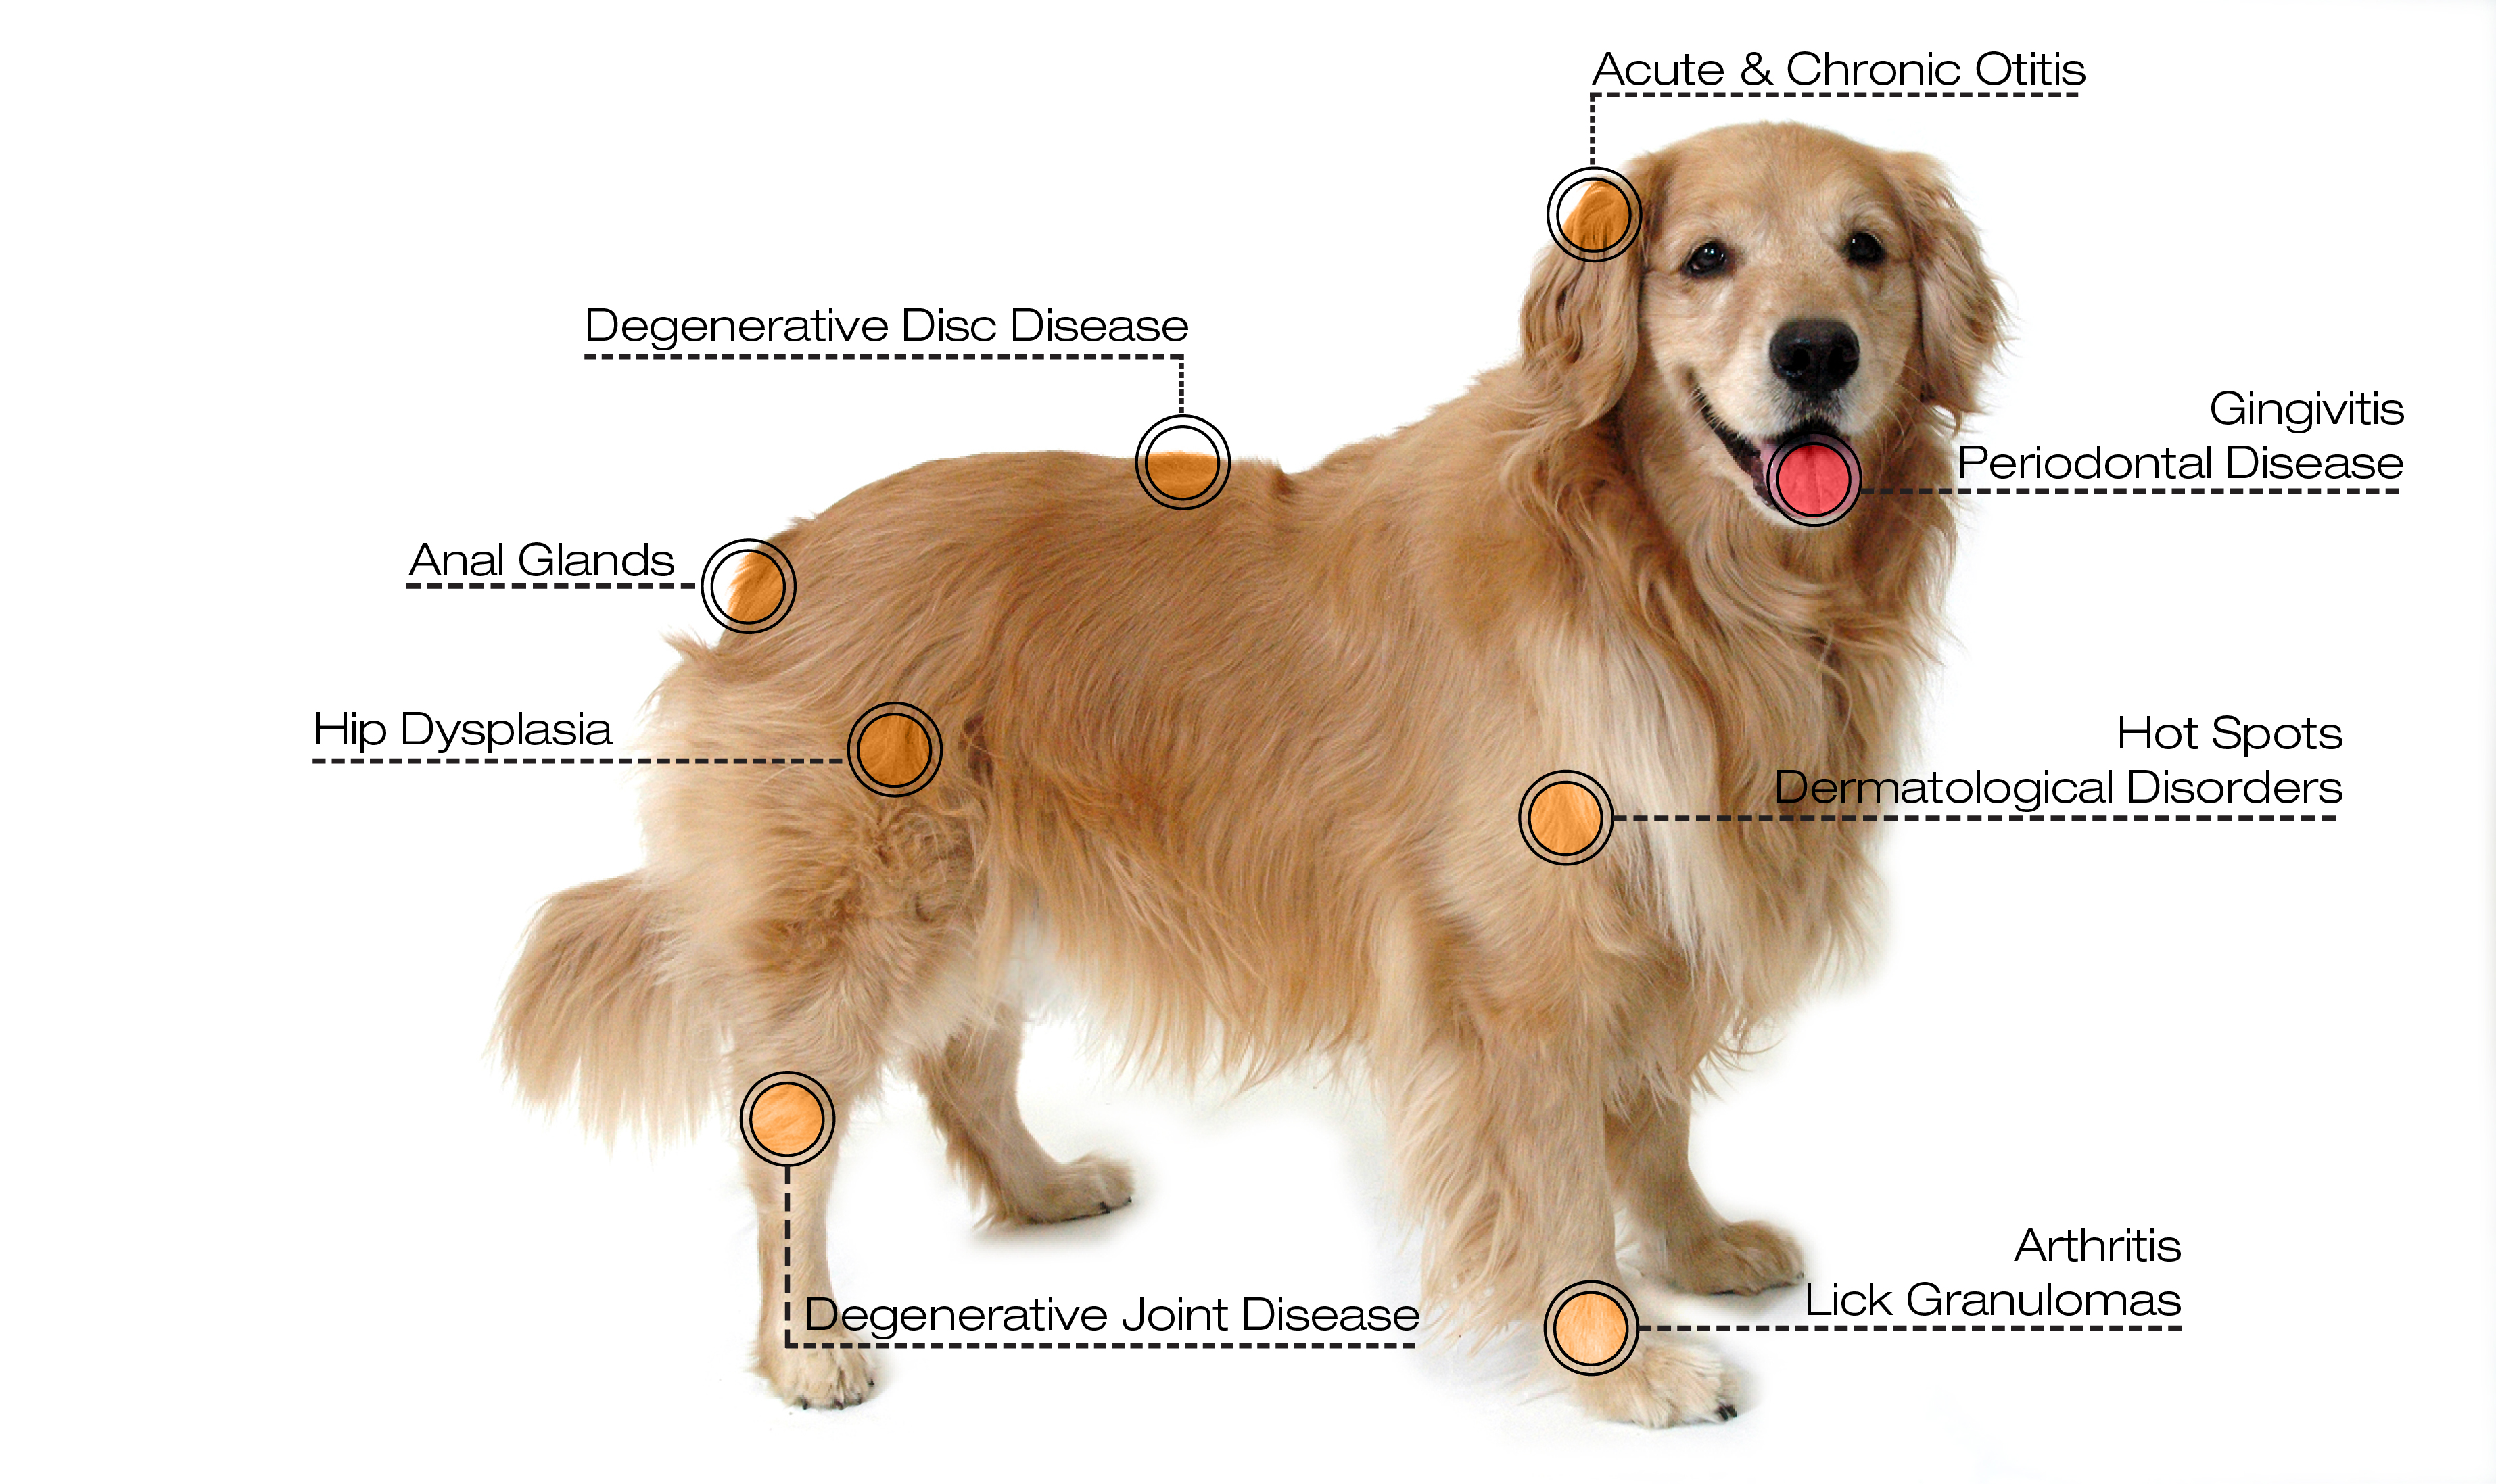 What Can I Give My Dog For Ear Pain